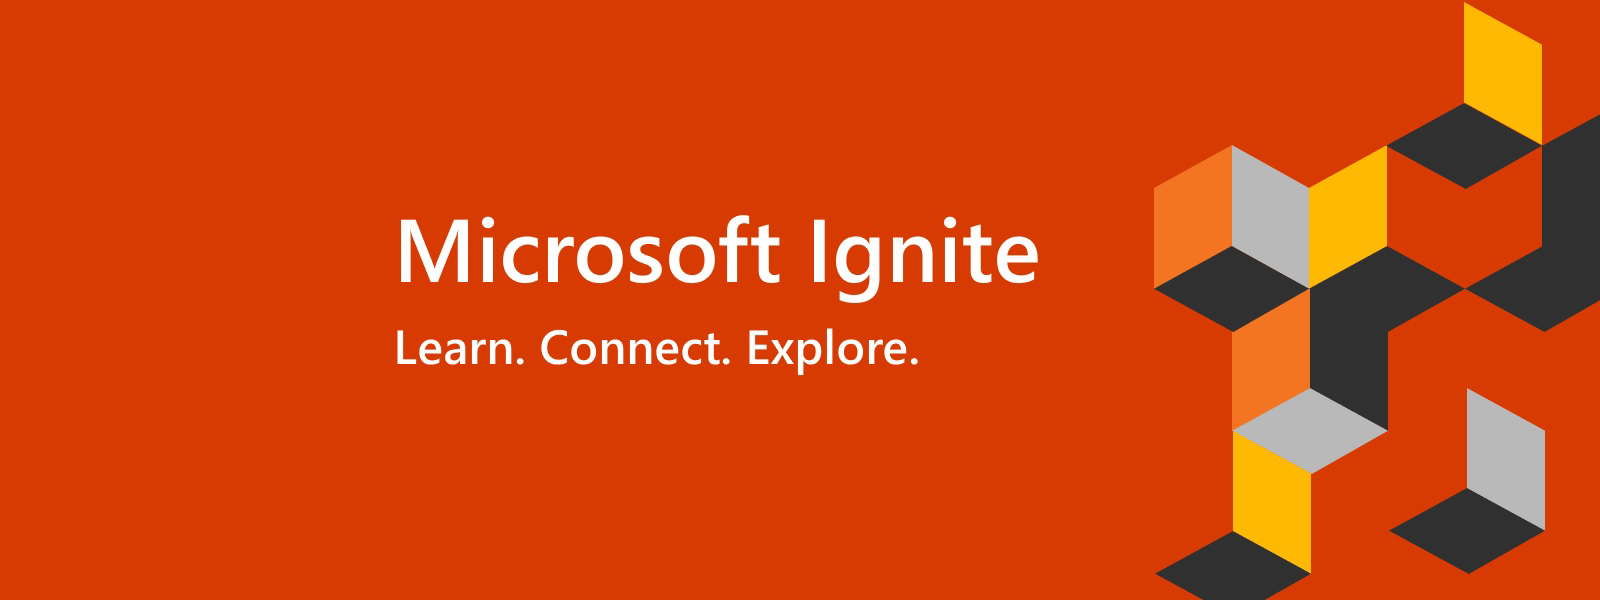 Bing Maps Team at Microsoft Ignite 2018